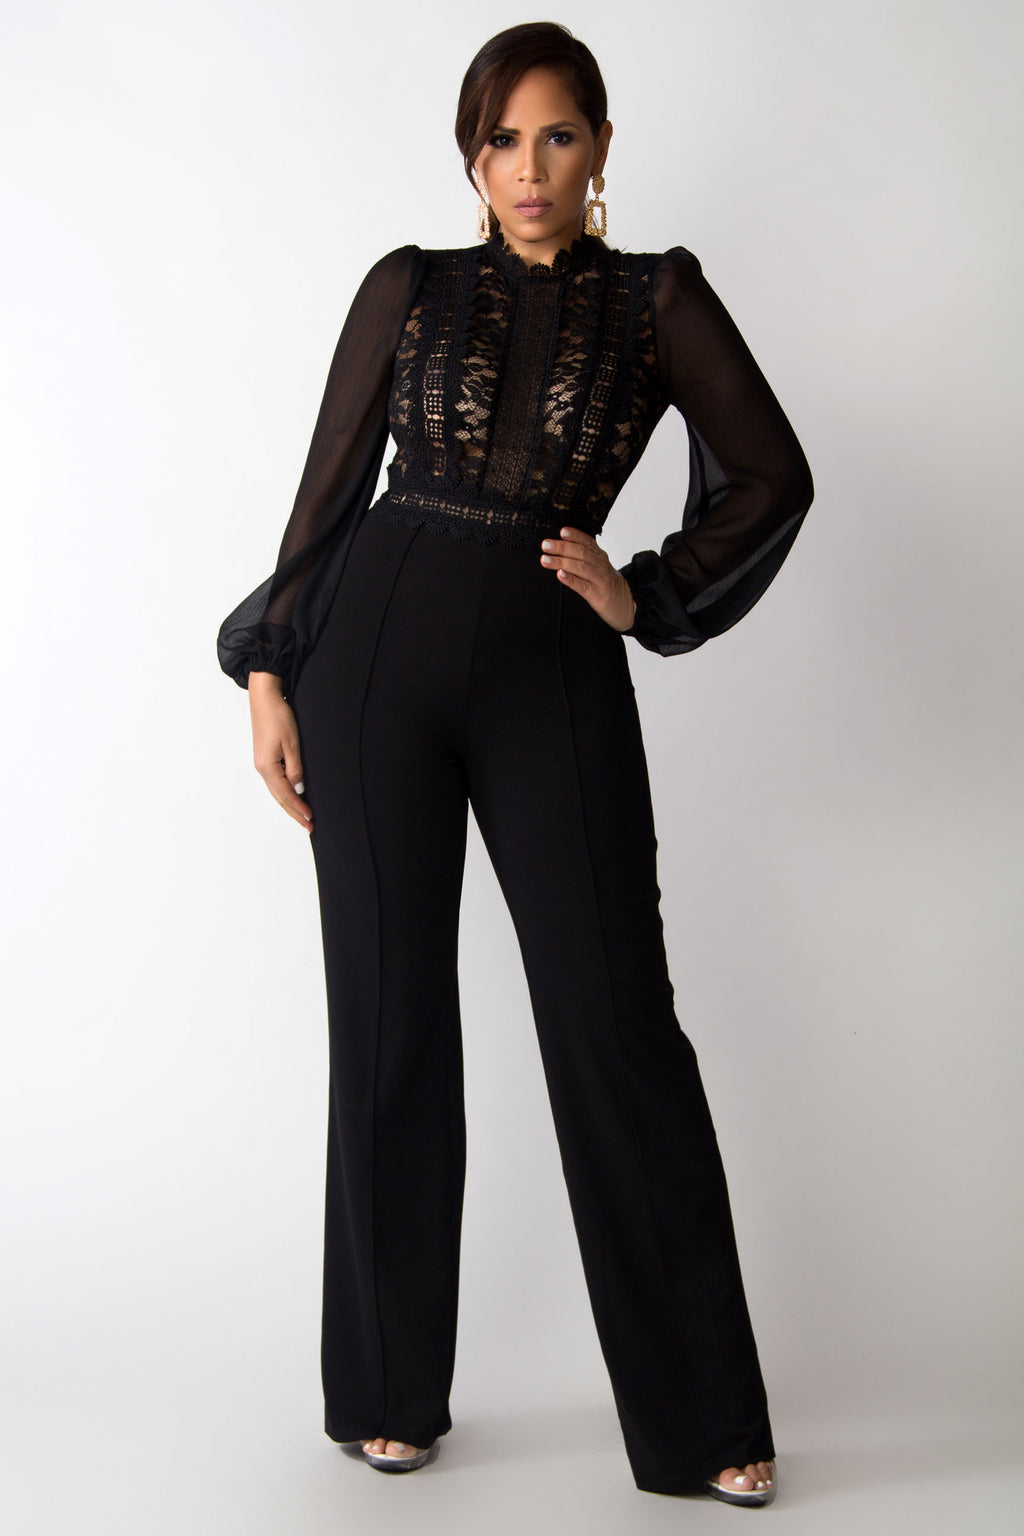 Brielle Lace Long Sleeves Top Boutique Jumpsuit